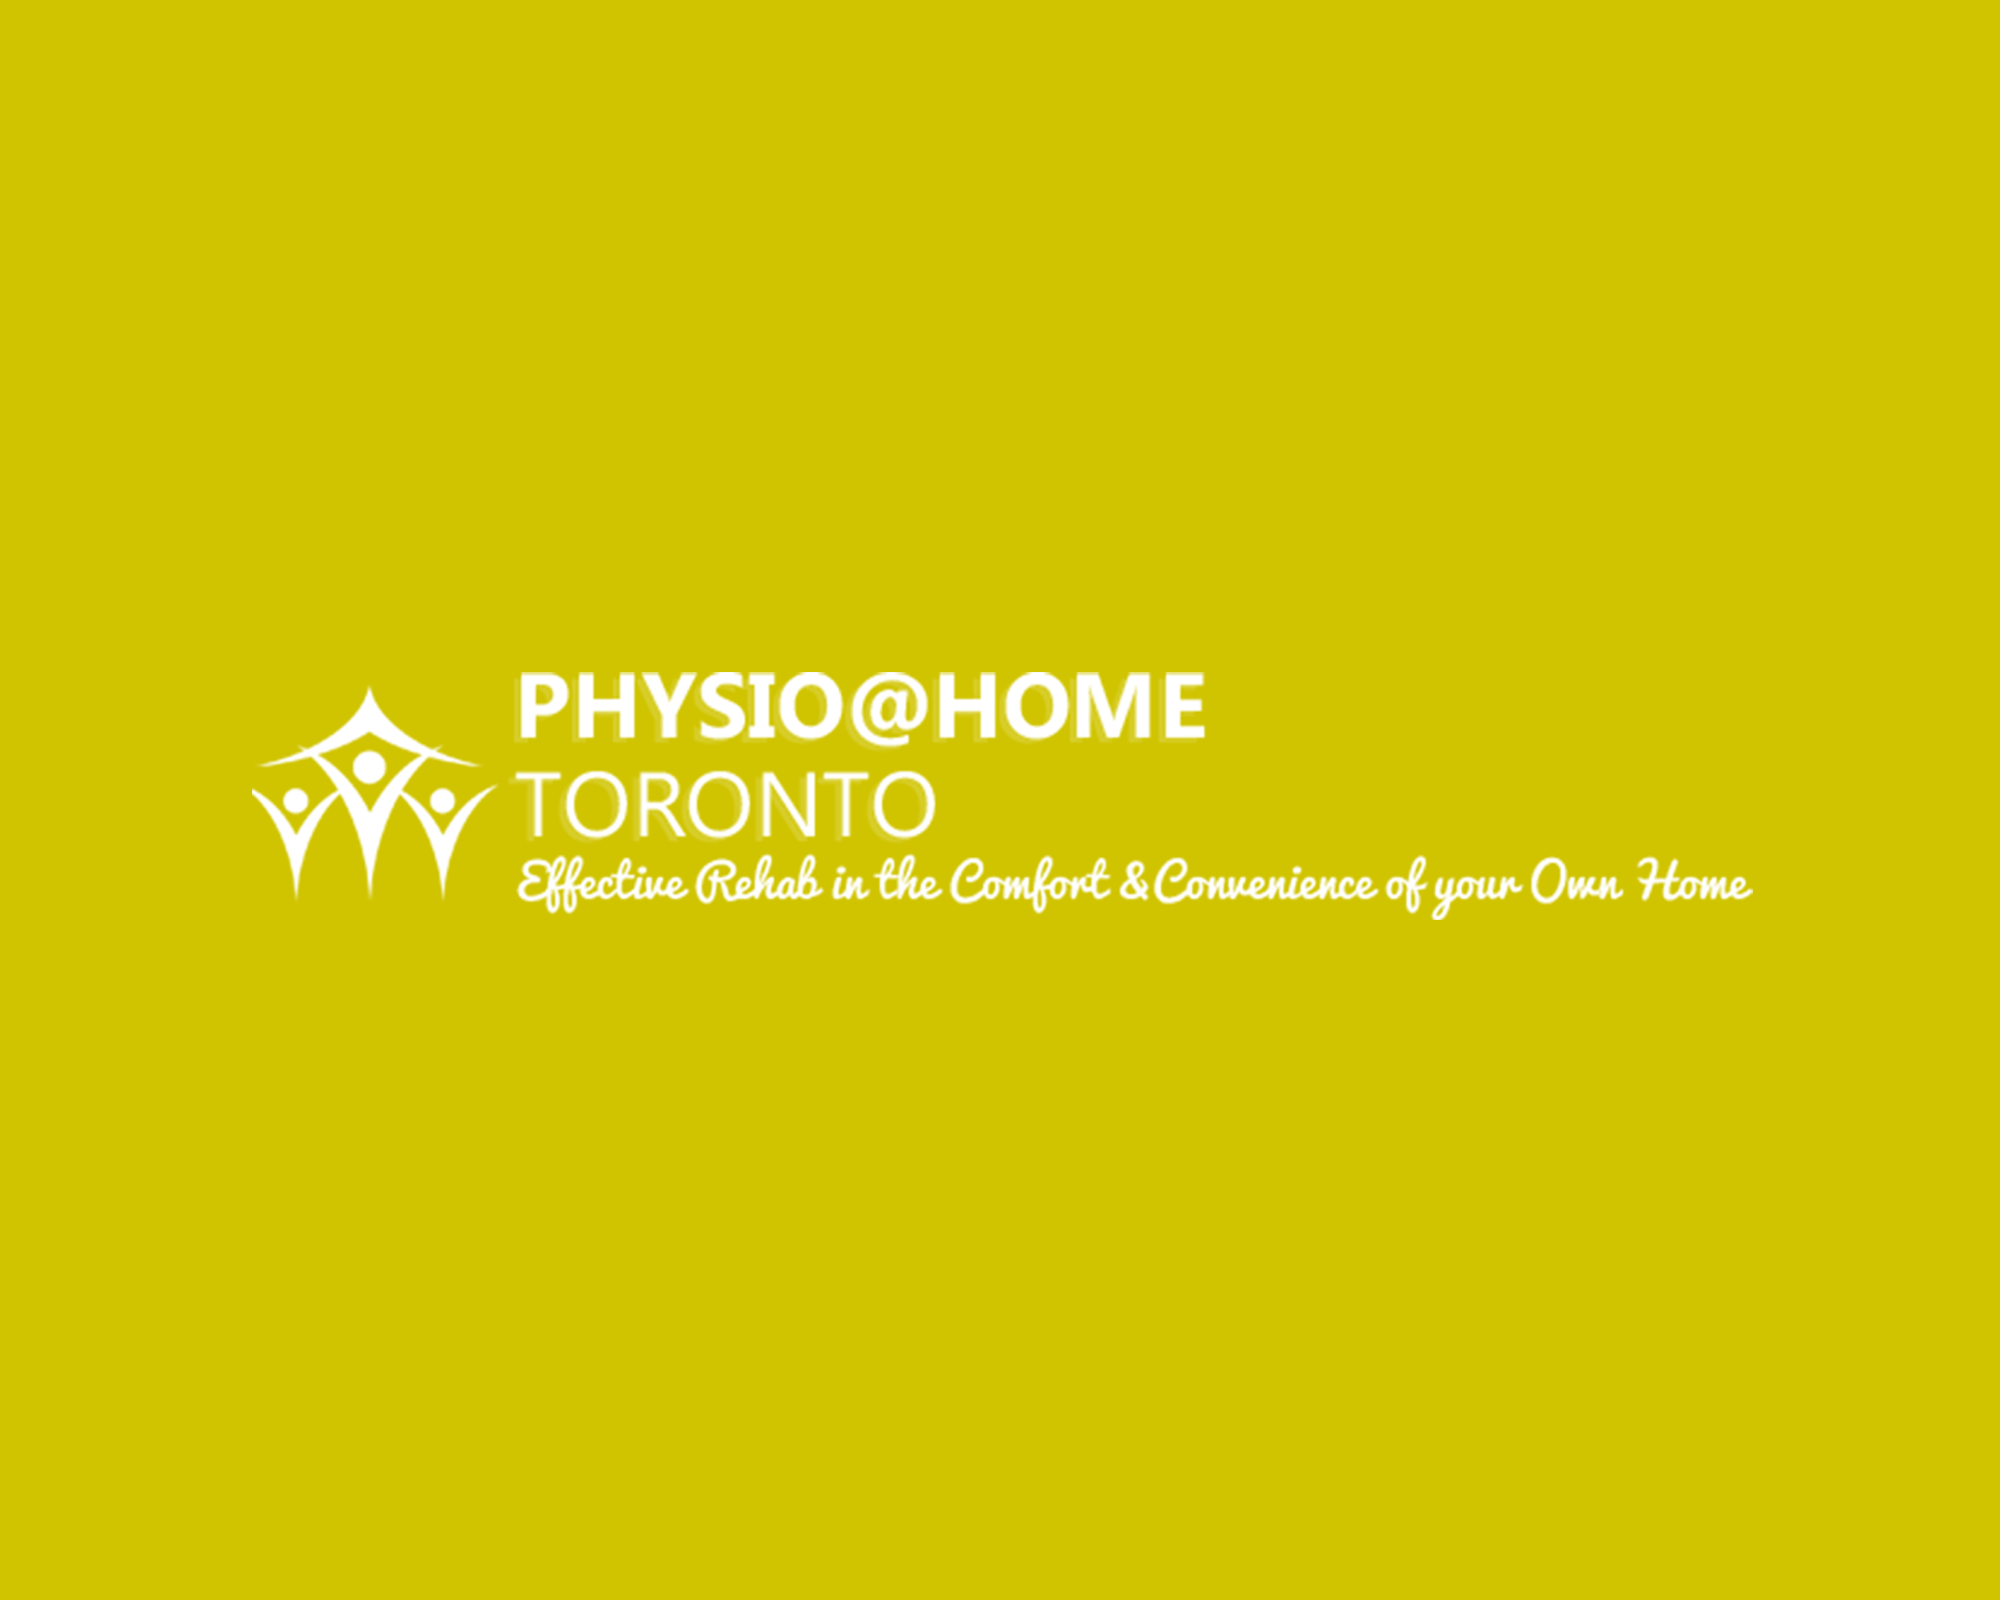 physio at home toronto Logo